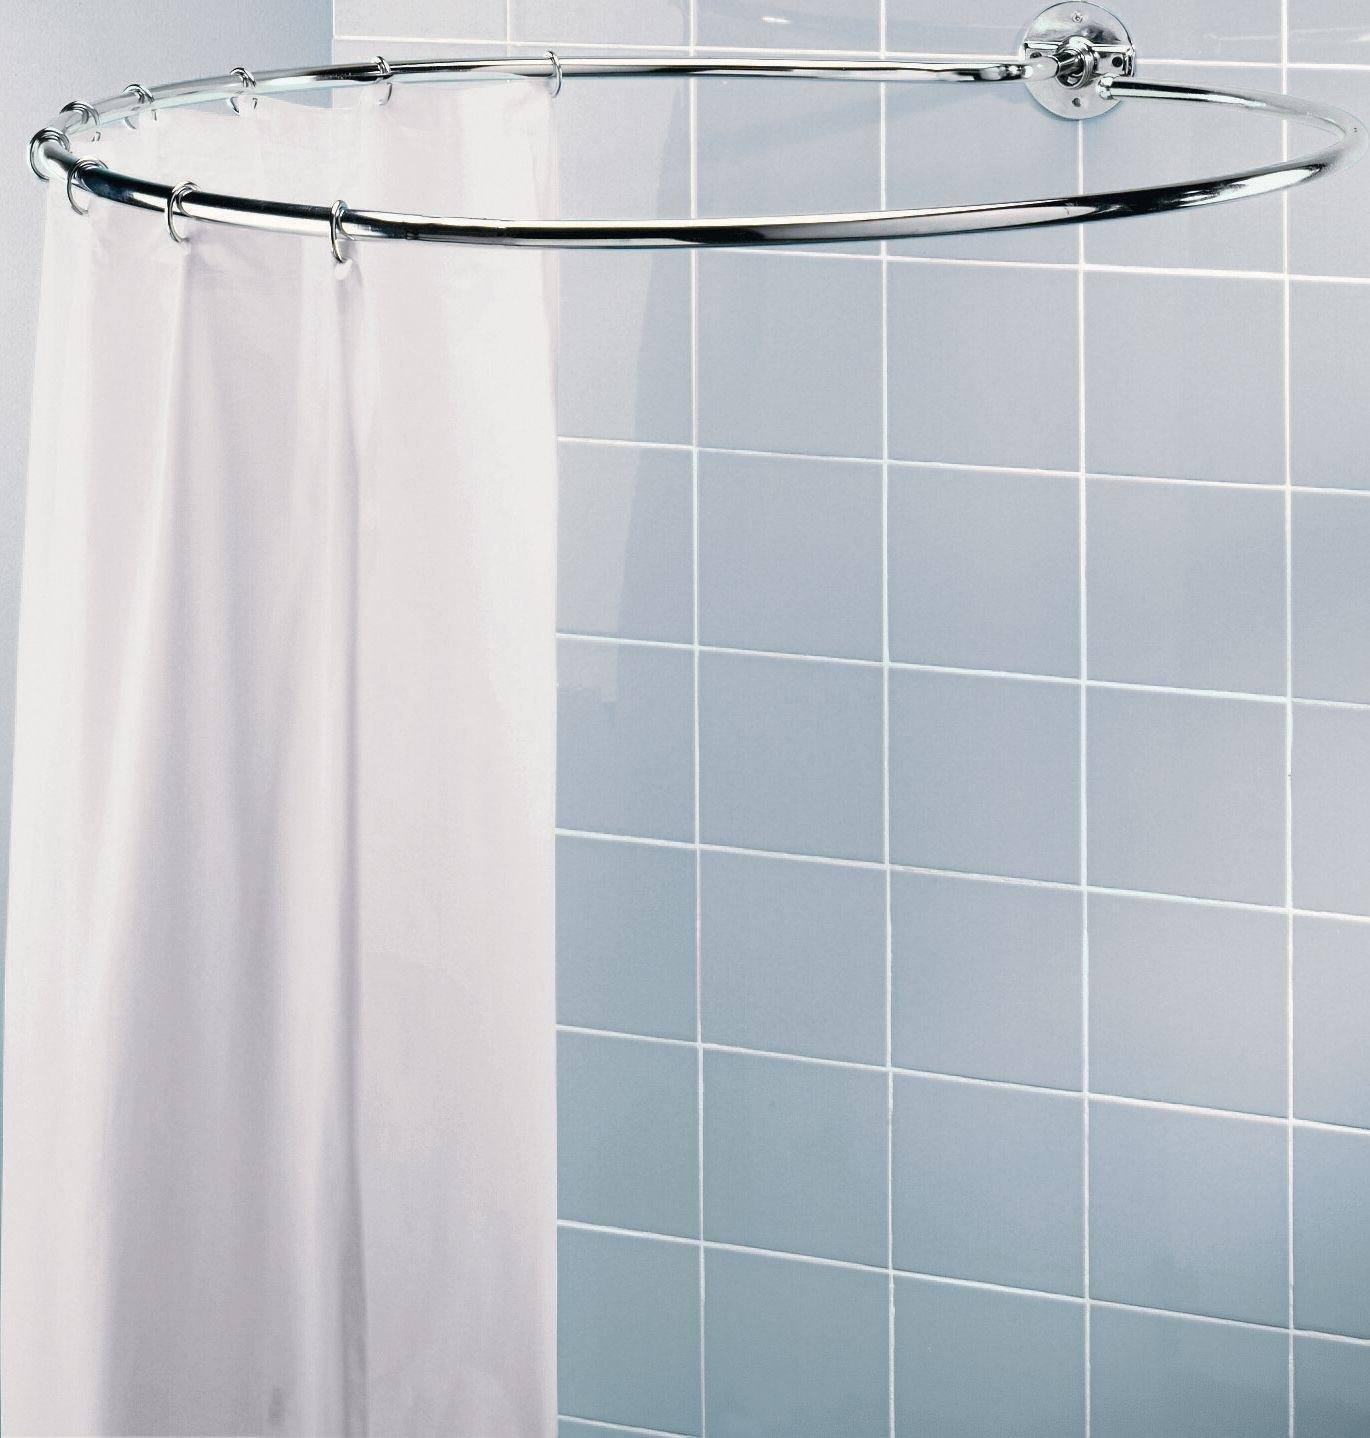 Argos Home Circular Shower Rail - Chrome Plated